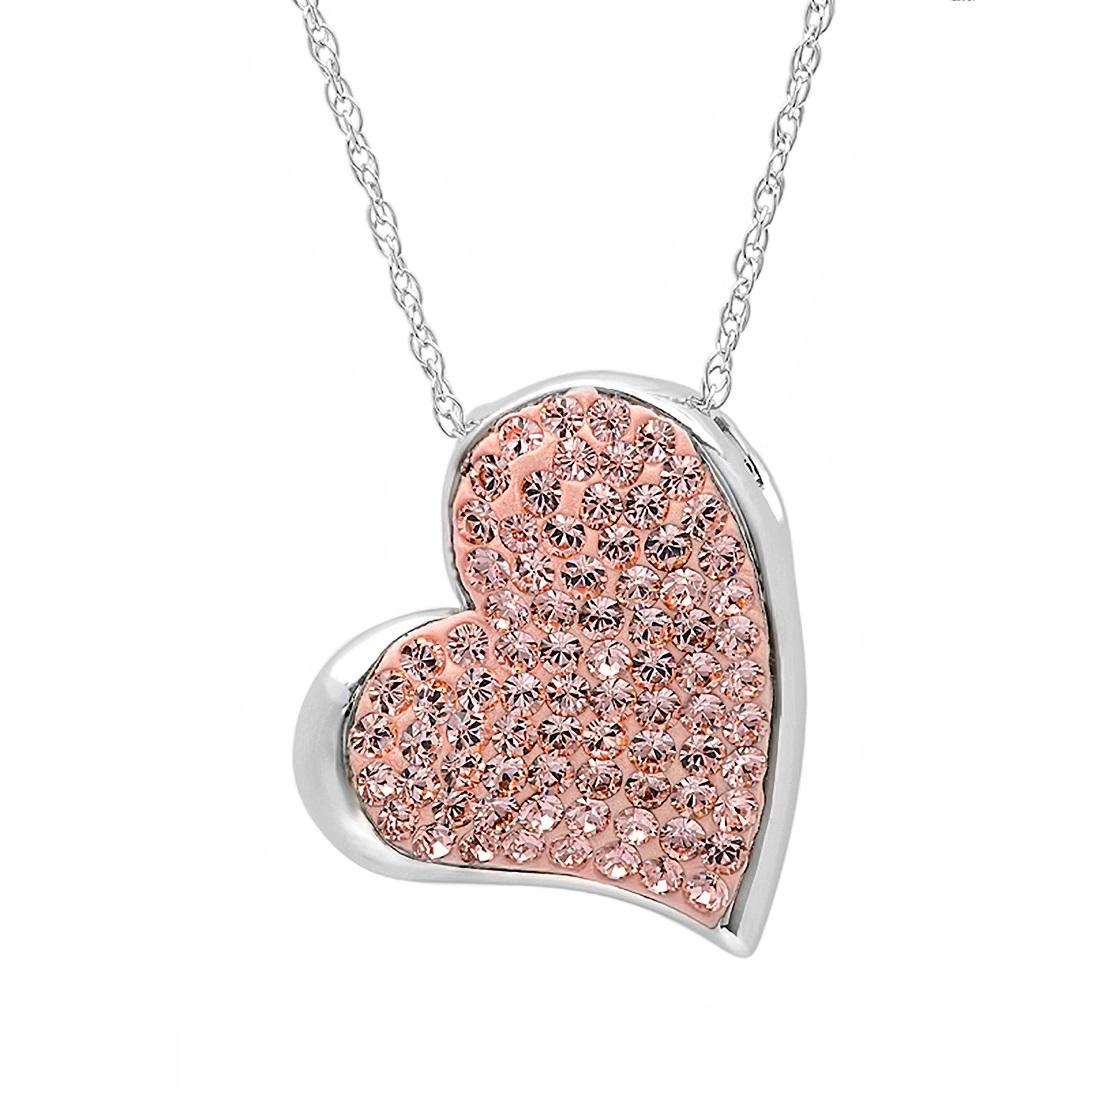 Amanda Rose Sterling Silver Heart Pendant made with Swarovski Crystals